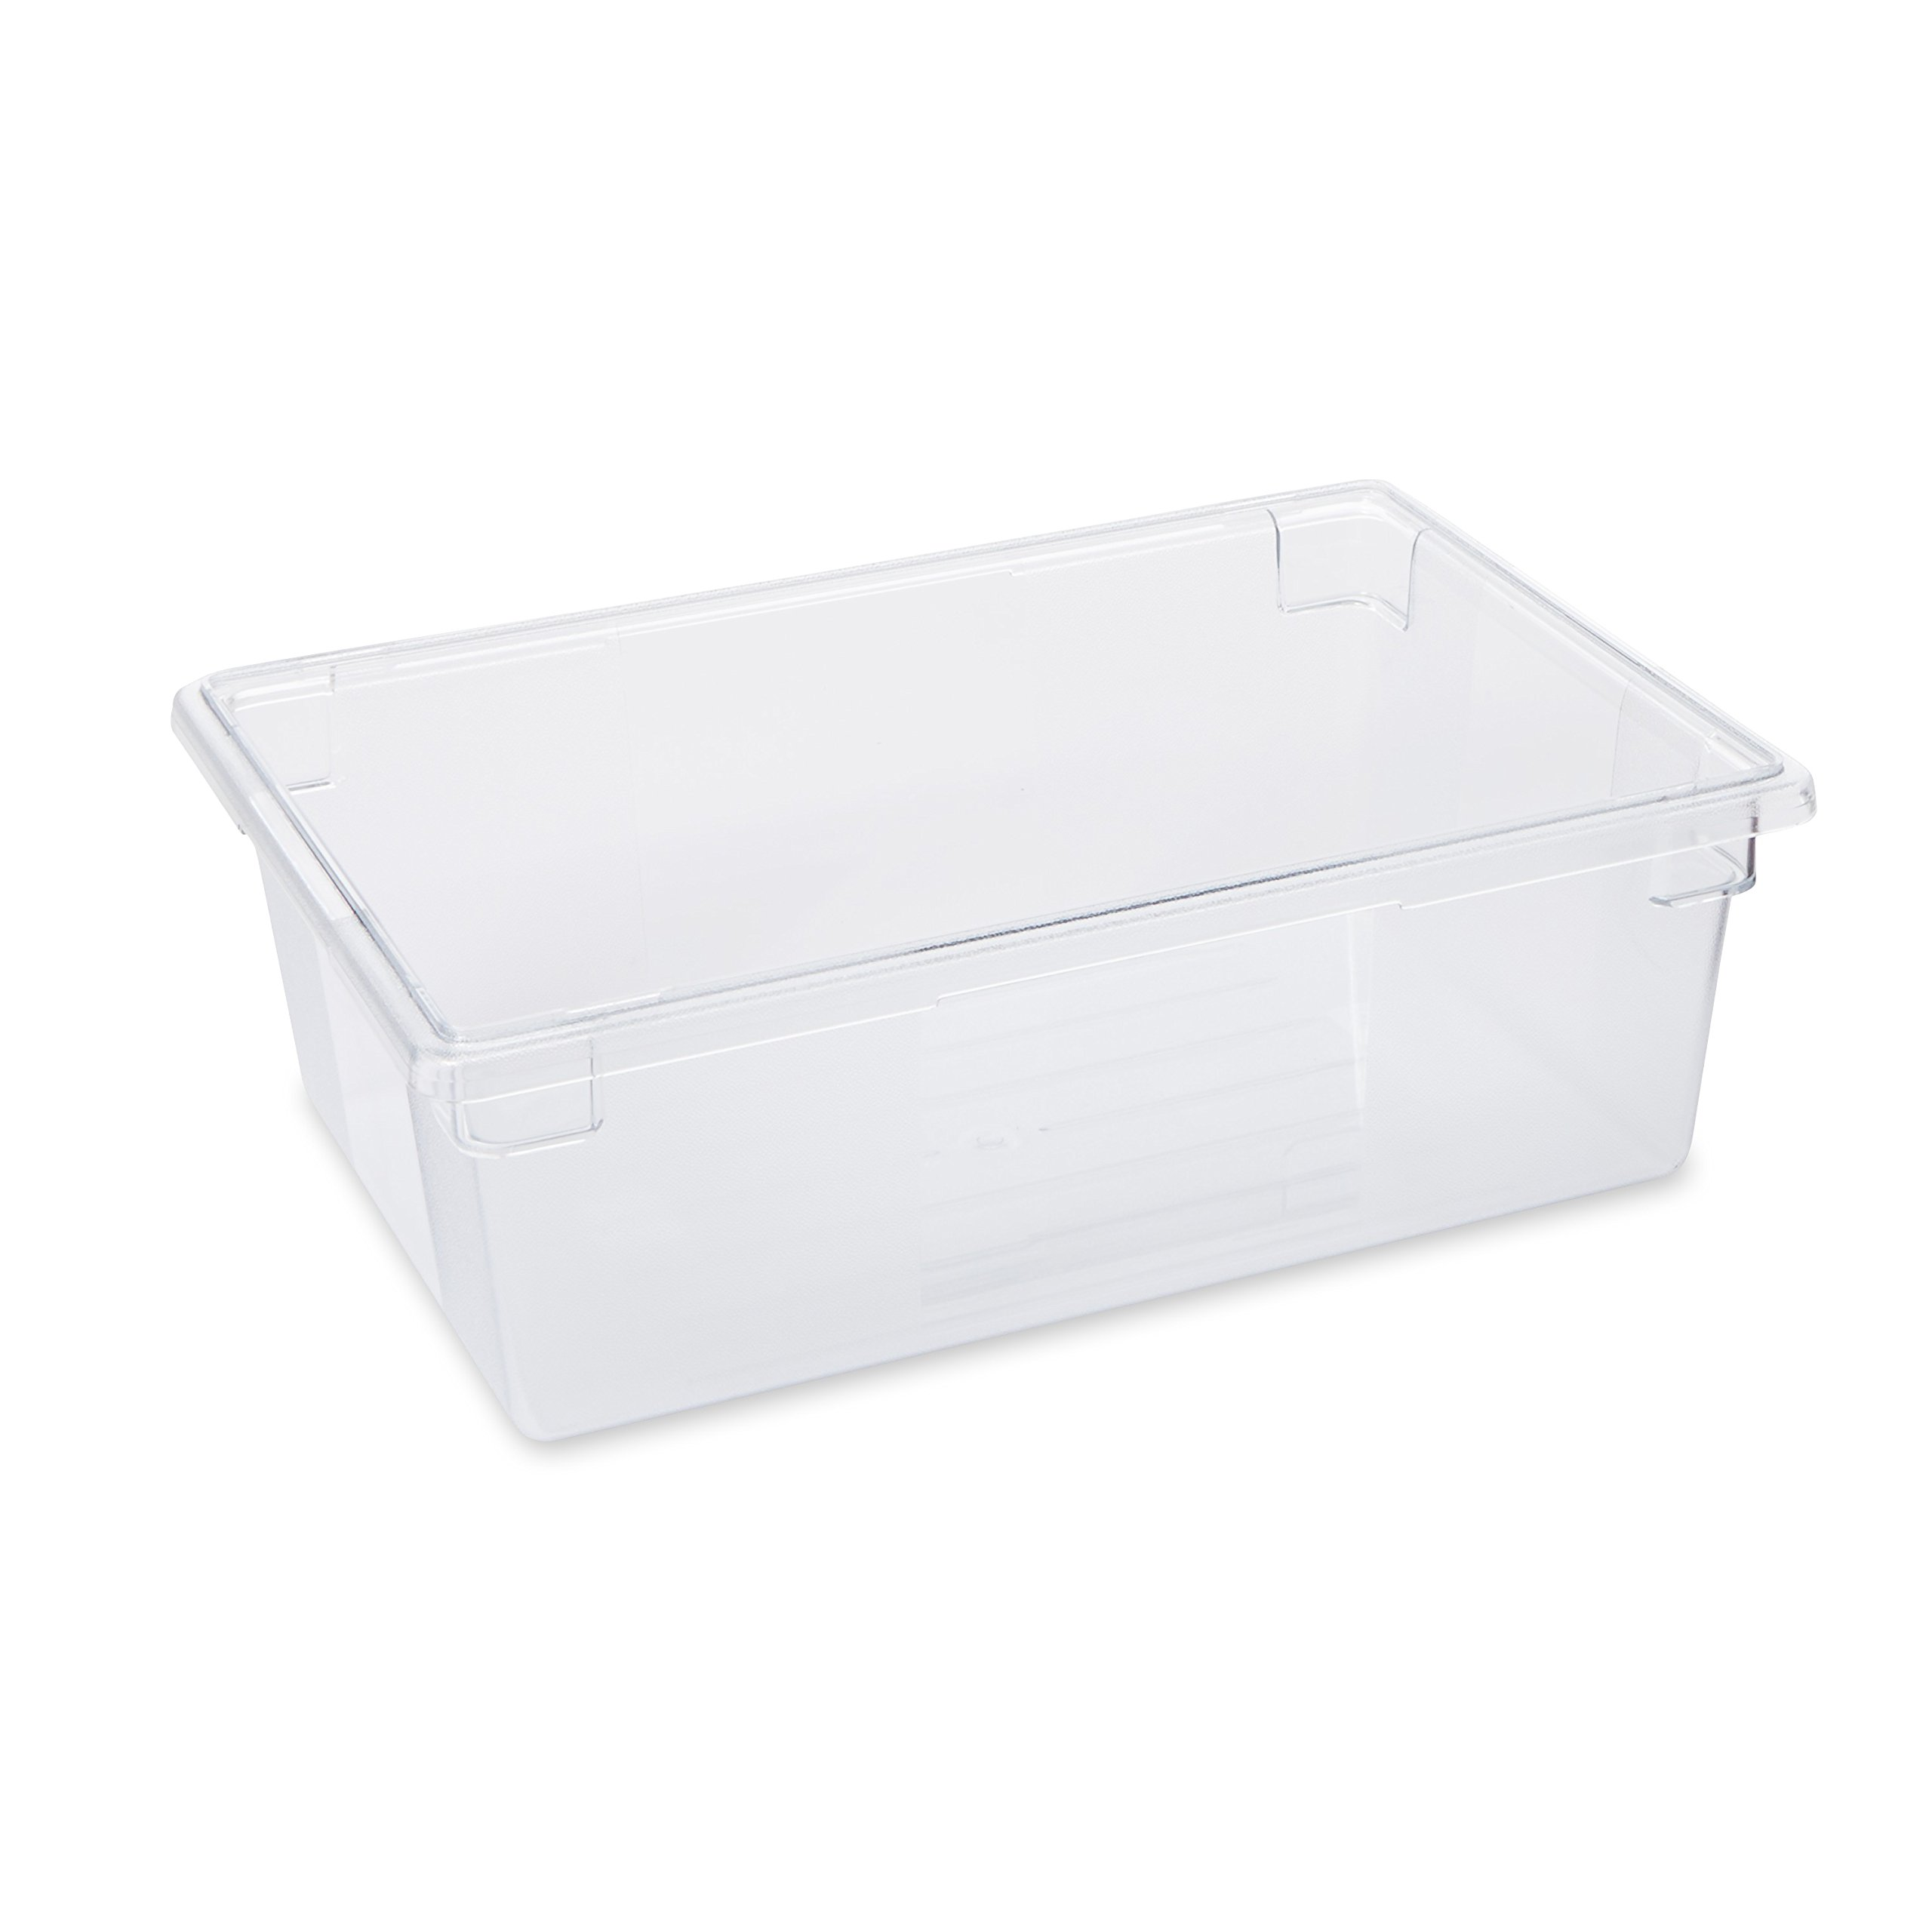 Rubbermaid Commercial Products FG330000CLR 12-1/2-Gallon Food/Tote Box